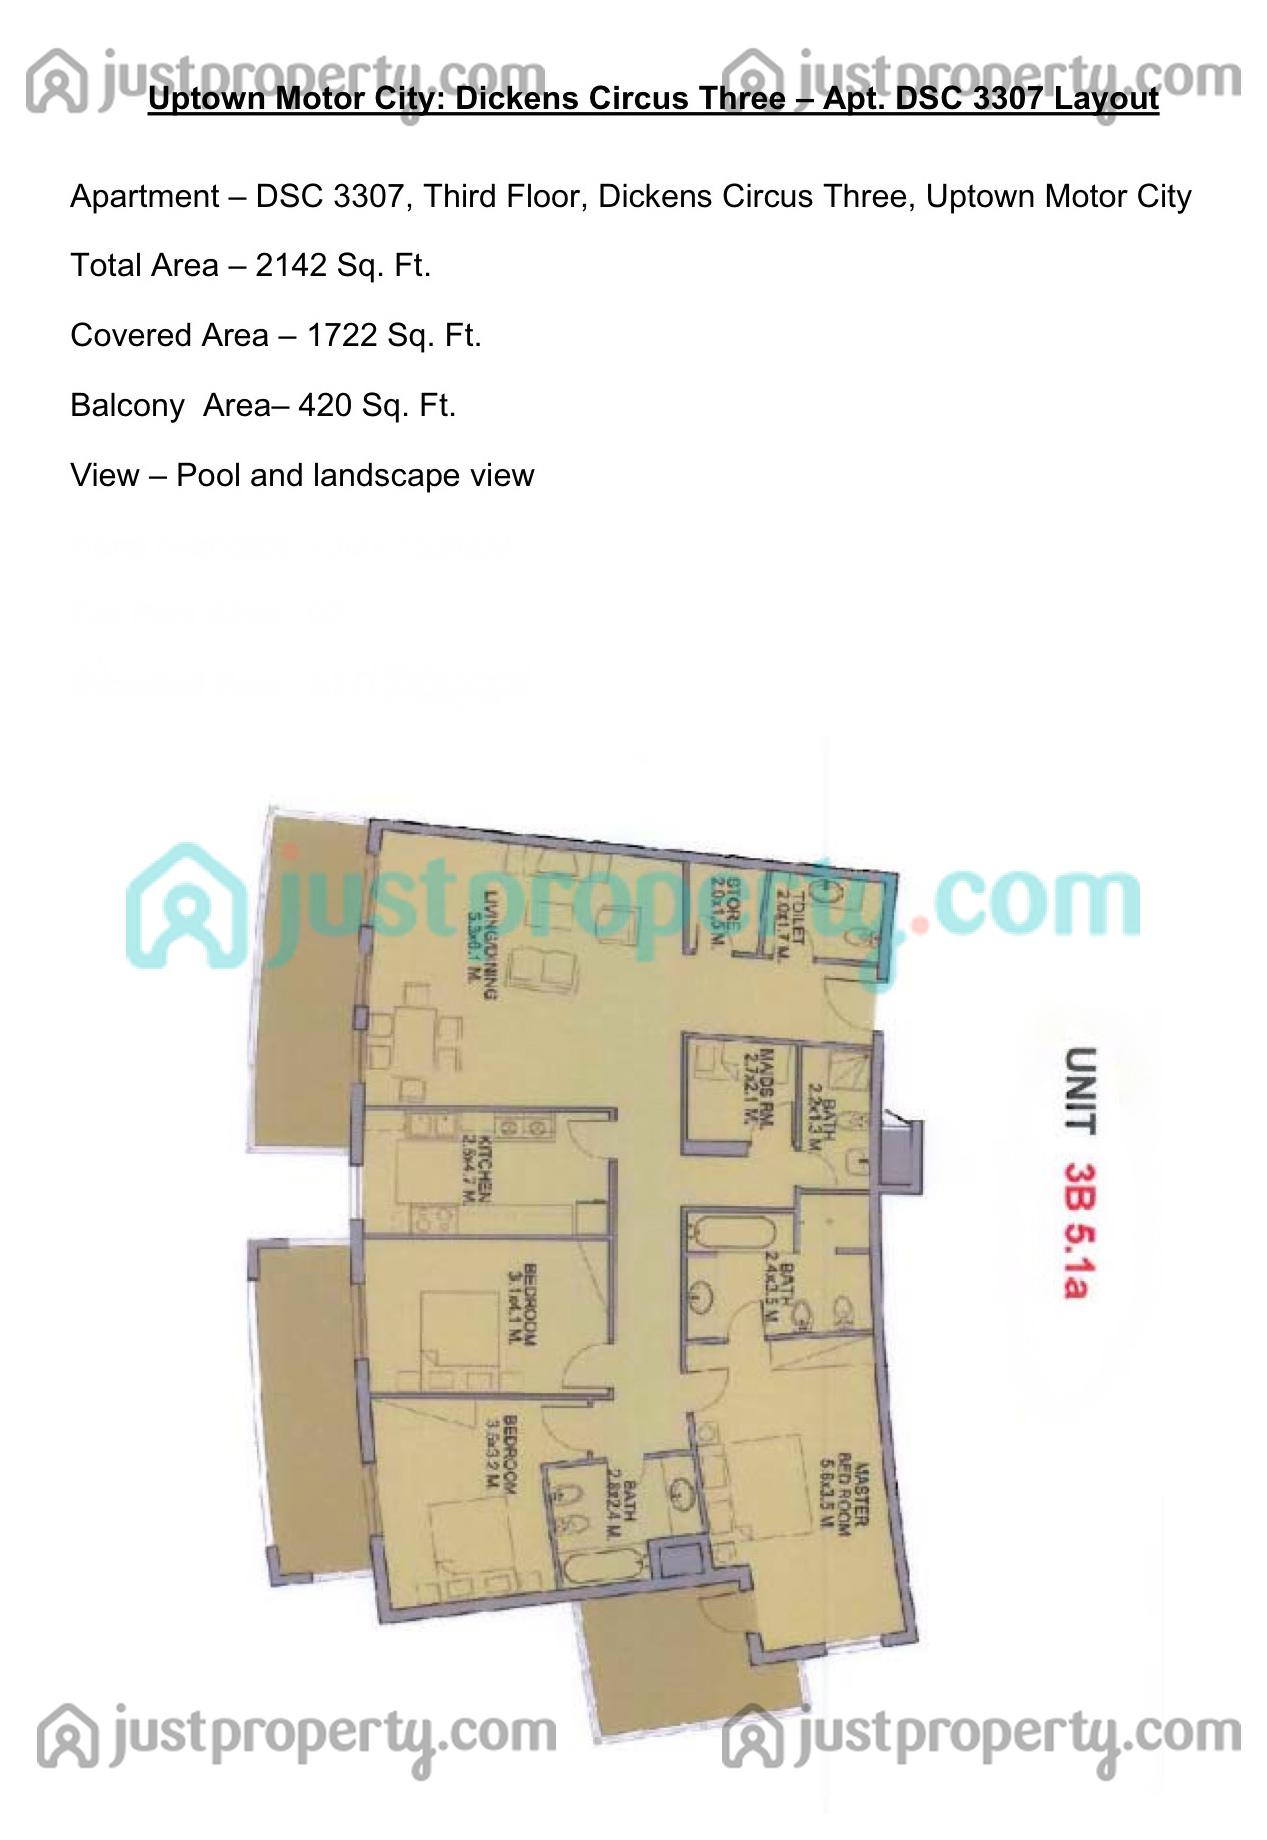 Dickens circus three floor plans for Motor city carpet and flooring